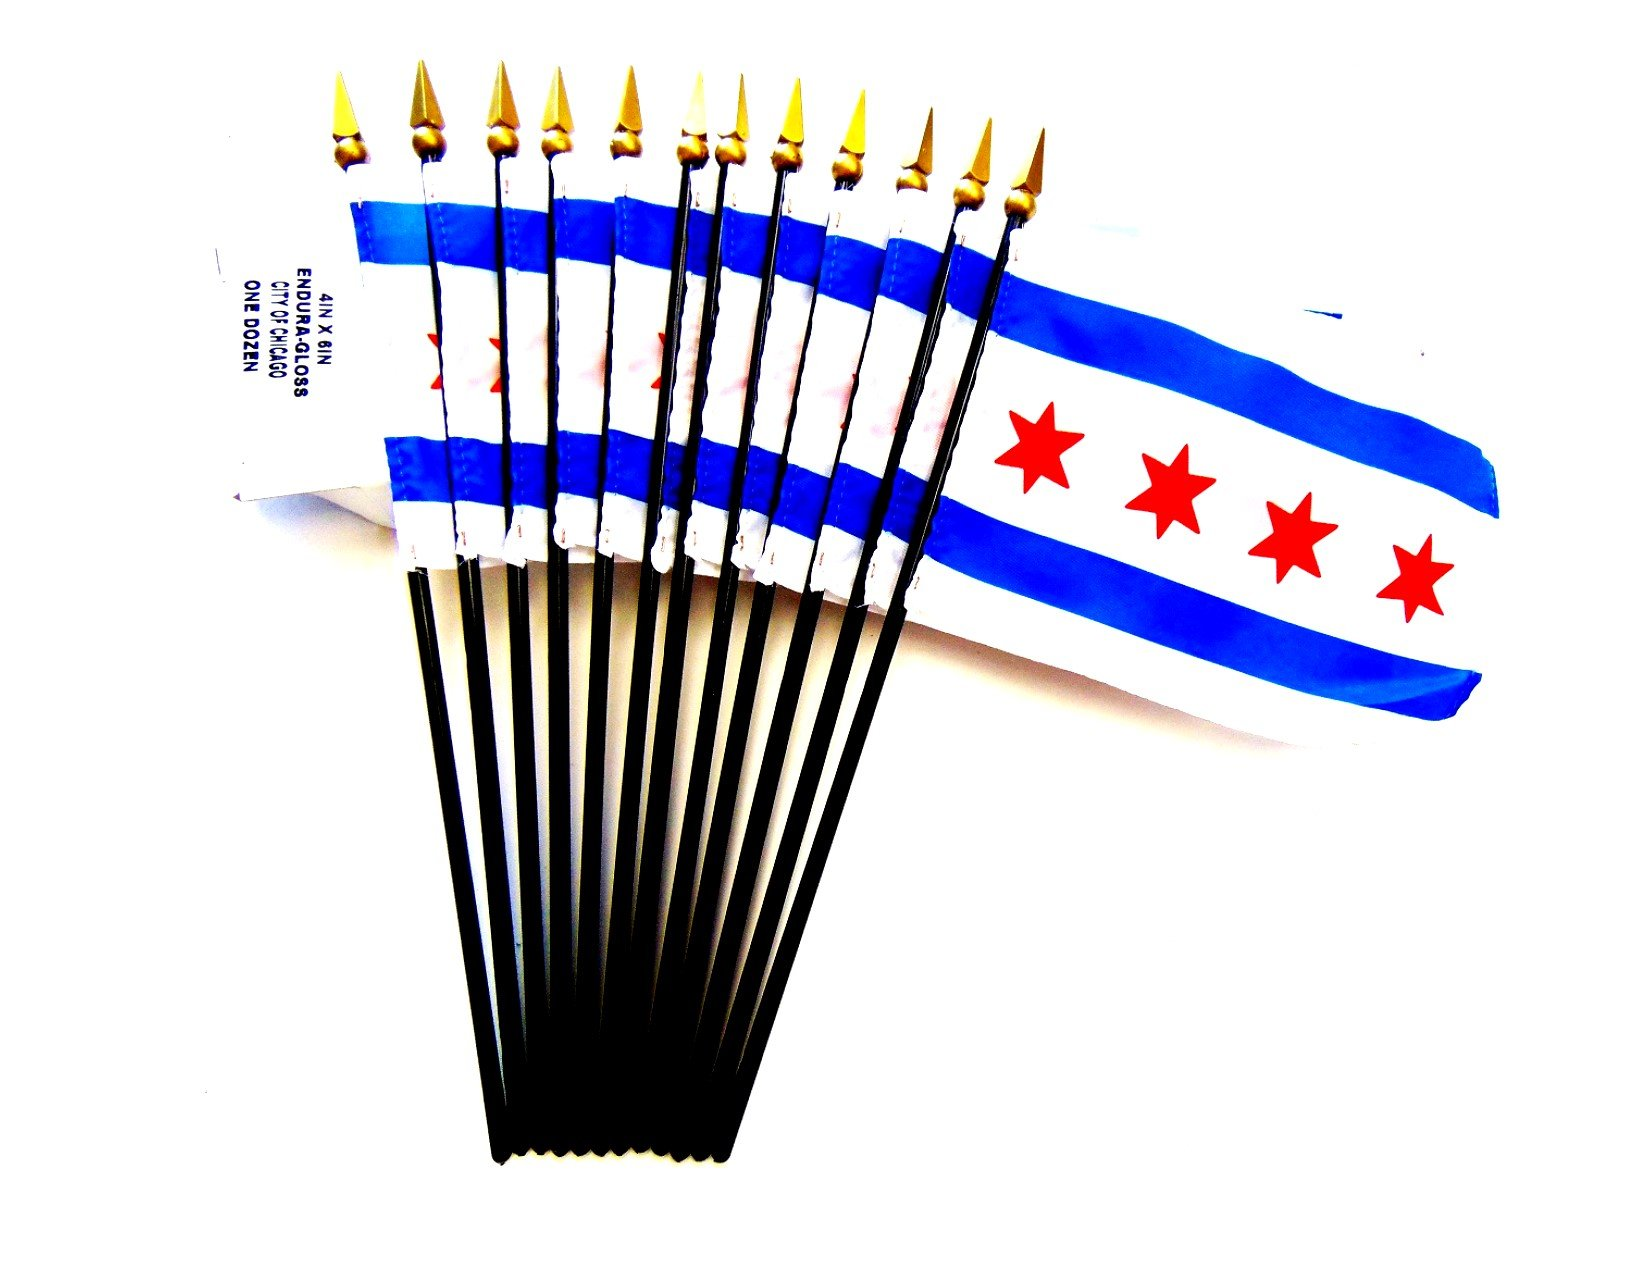 MADE IN USA!! Box of 12 Chicago 4''x6'' Miniature Desk & Table Flags; 12 American Made Small Mini City of Chicago Flags in a Custom Made Cardboard Box Specifically Made for These Flags